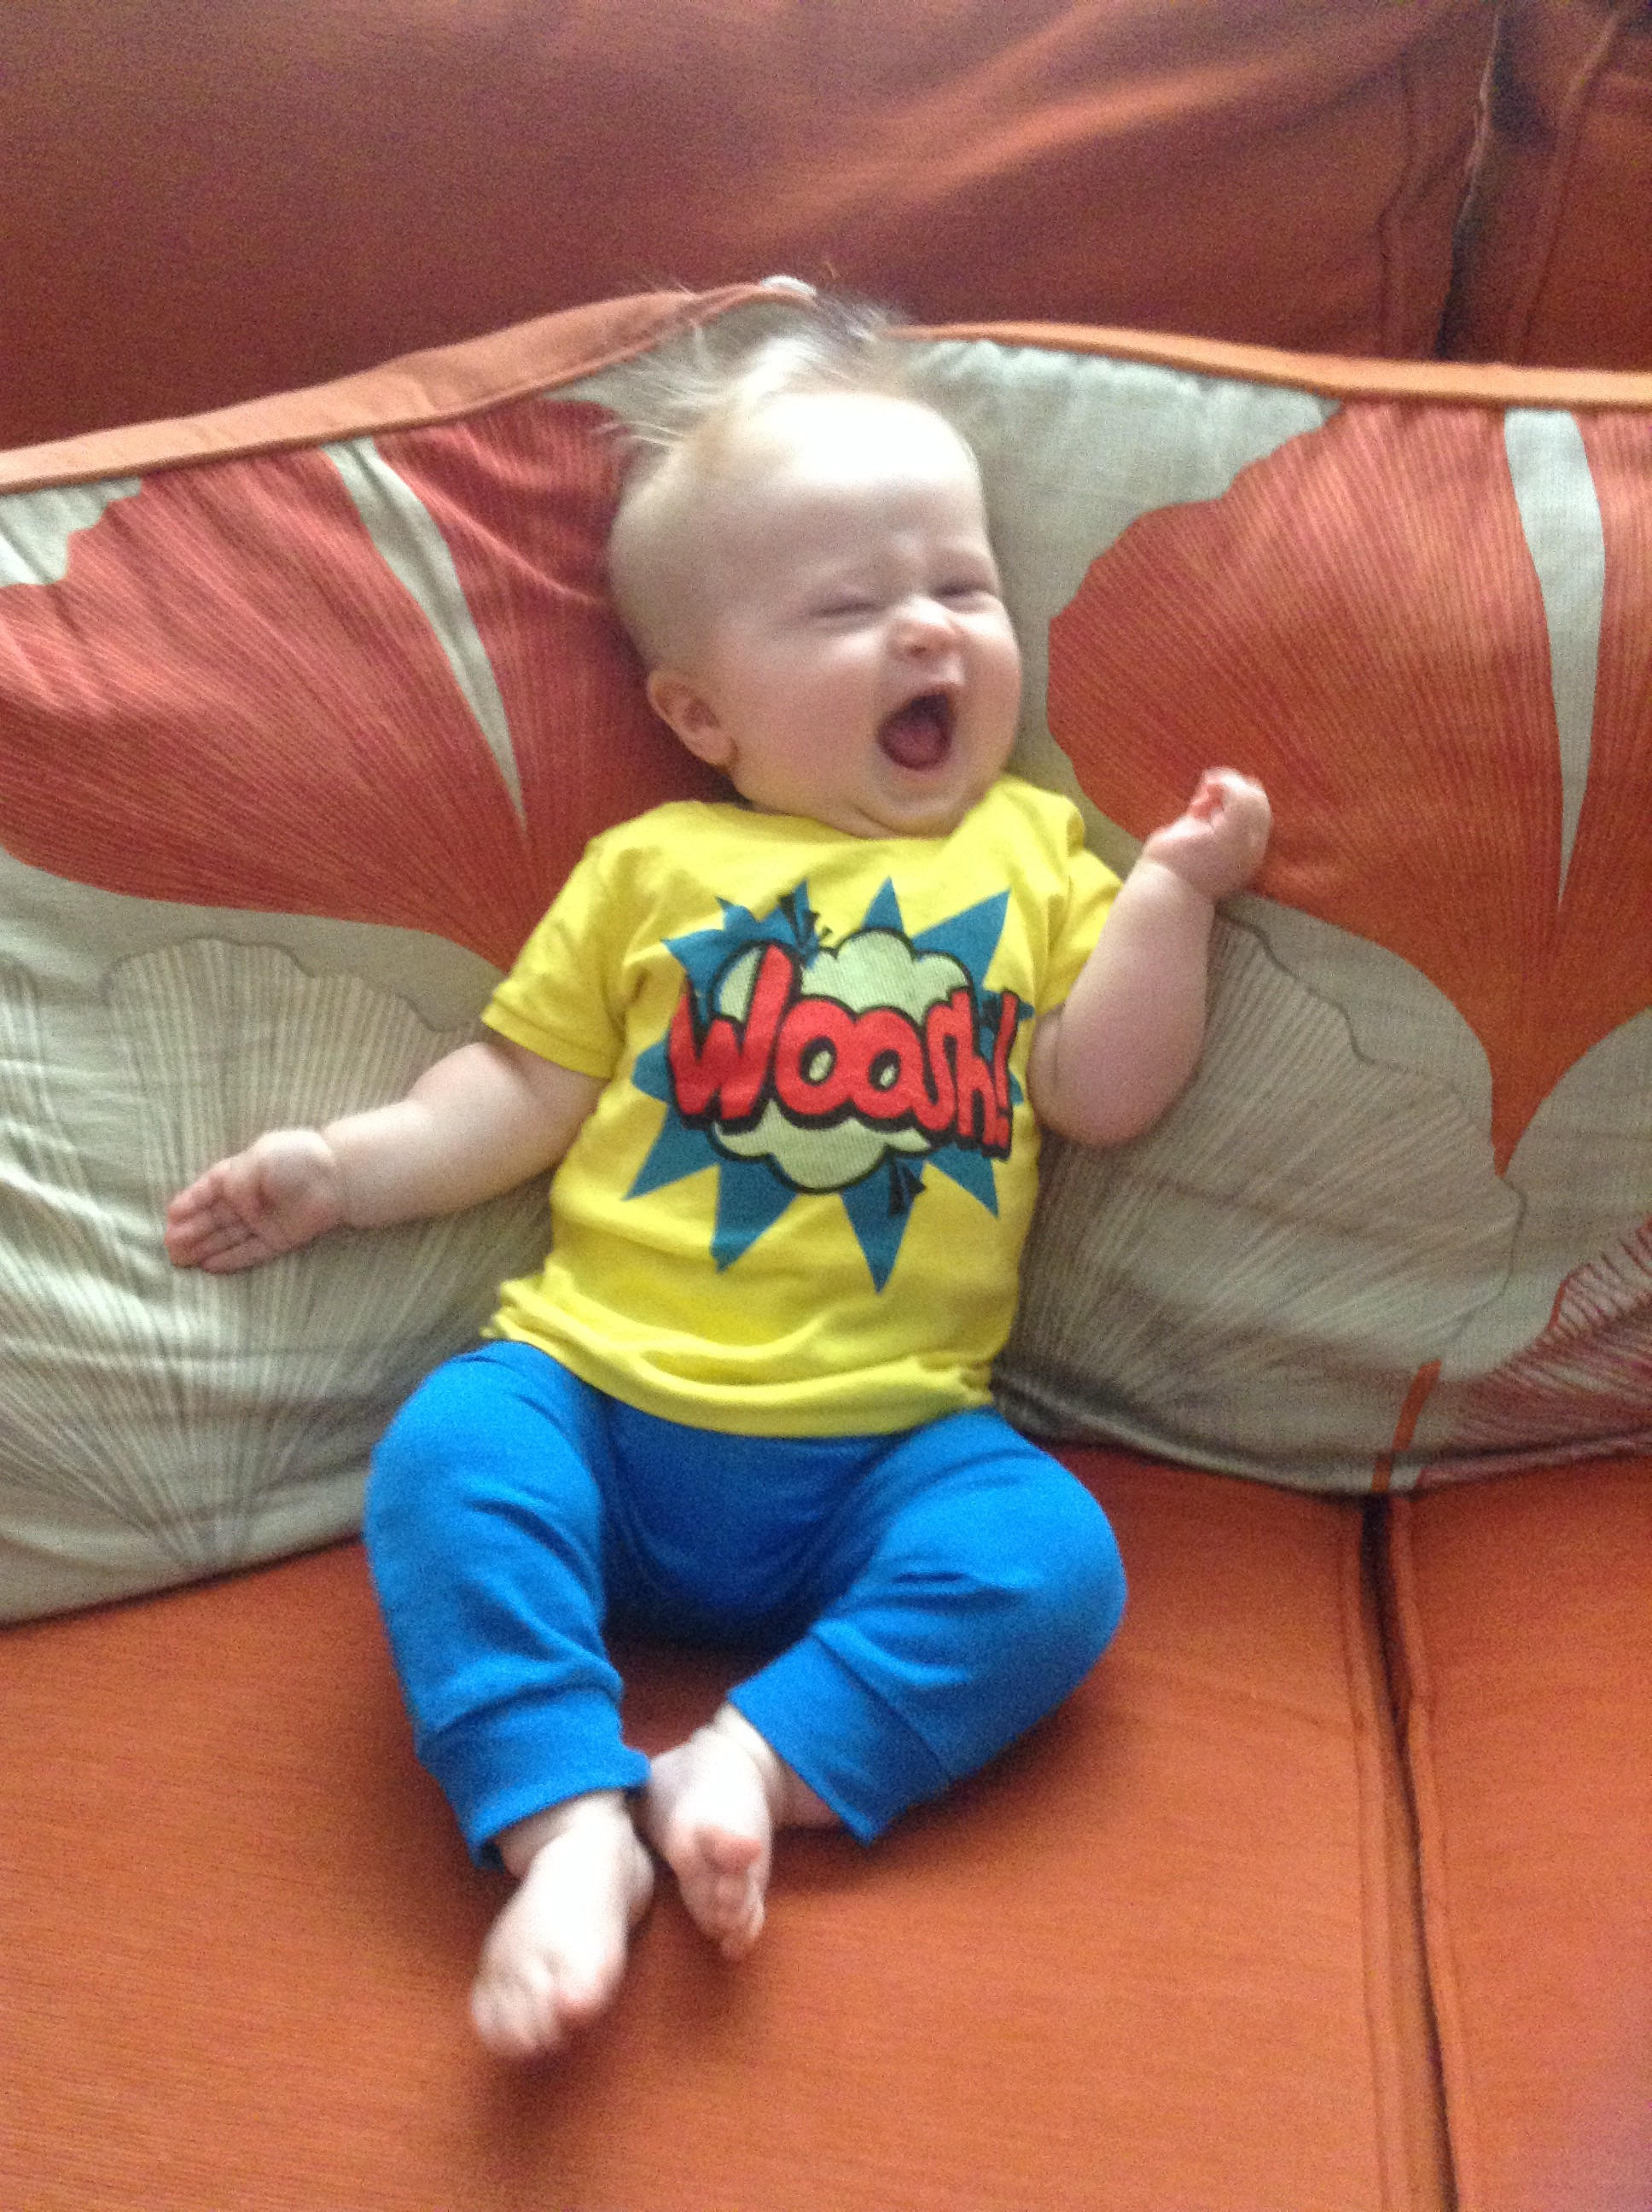 baby fashion, bright blue jogging pants and yellow t shirt with a red woosh in the middle and blue pattern